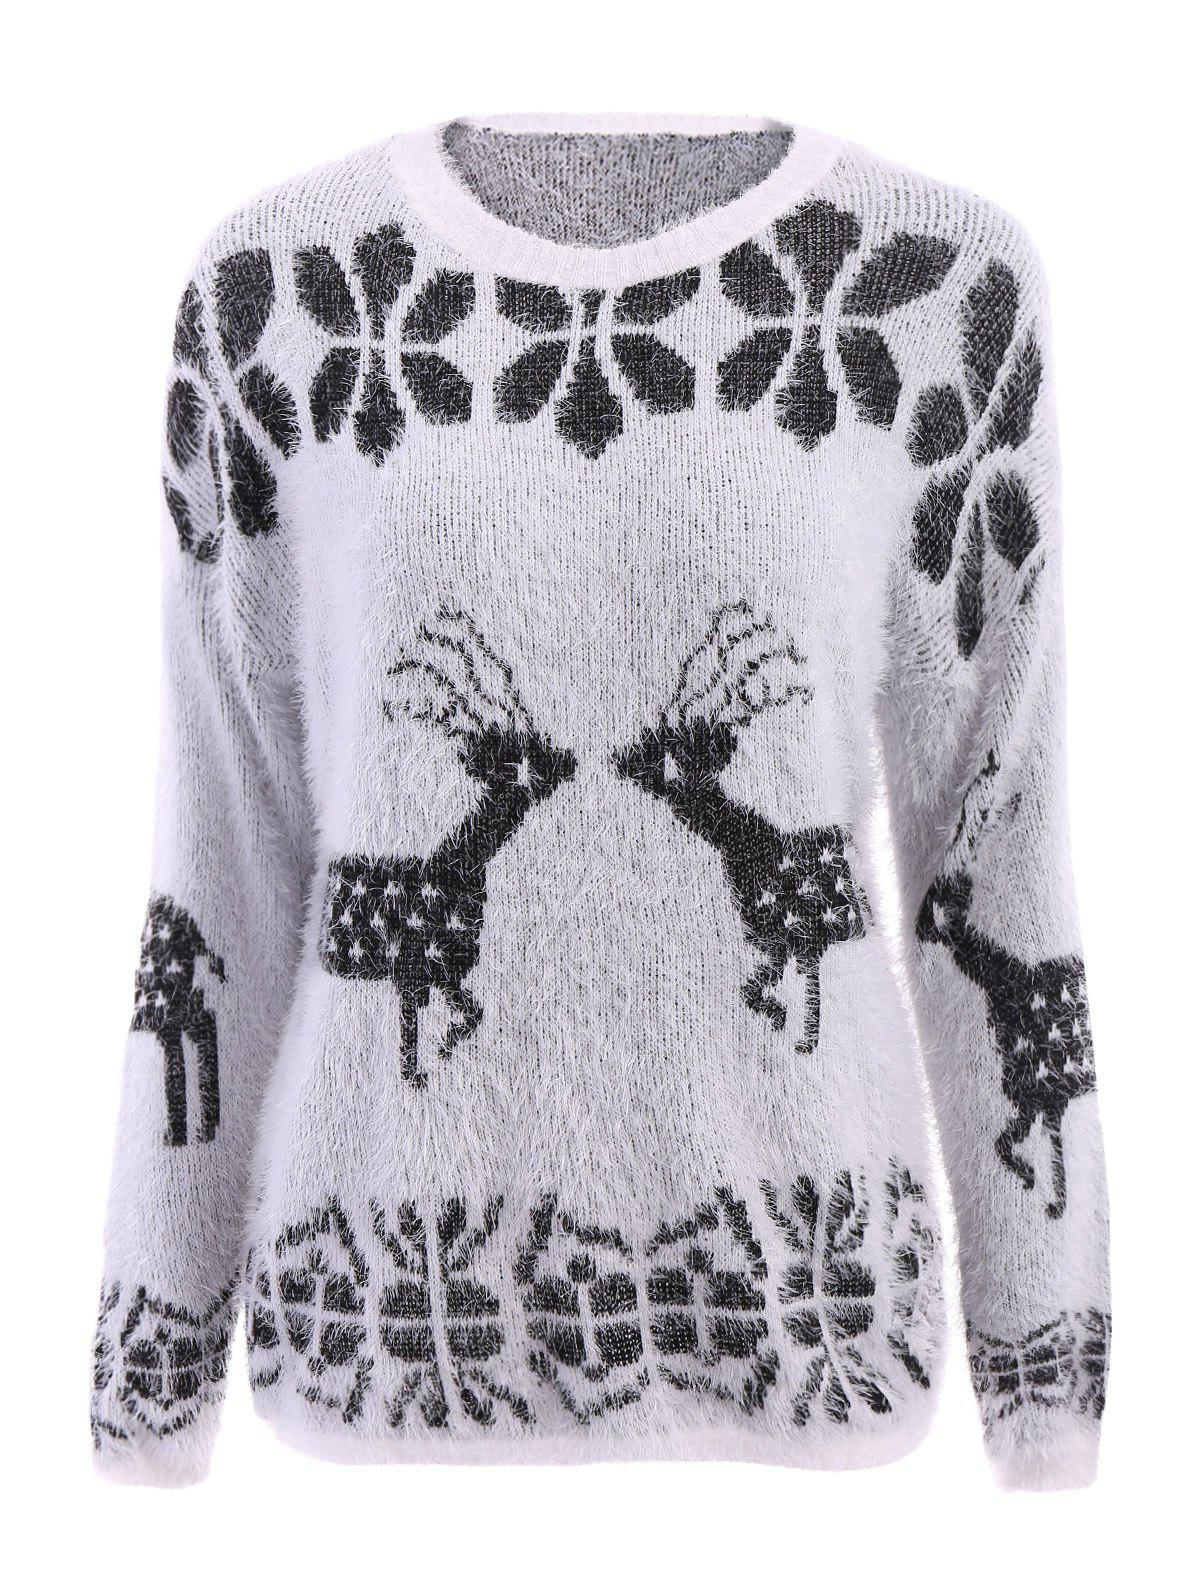 Stylish Scoop Neck Deer Pattern Long Sleeve Womens Christmas SweaterWOMEN<br><br>Size: ONE SIZE(FIT SIZE XS TO M); Color: WHITE; Type: Pullovers; Material: Polyester; Sleeve Length: Full; Collar: Scoop Neck; Style: Fashion; Weight: 0.410kg; Package Contents: 1 x Sweater;